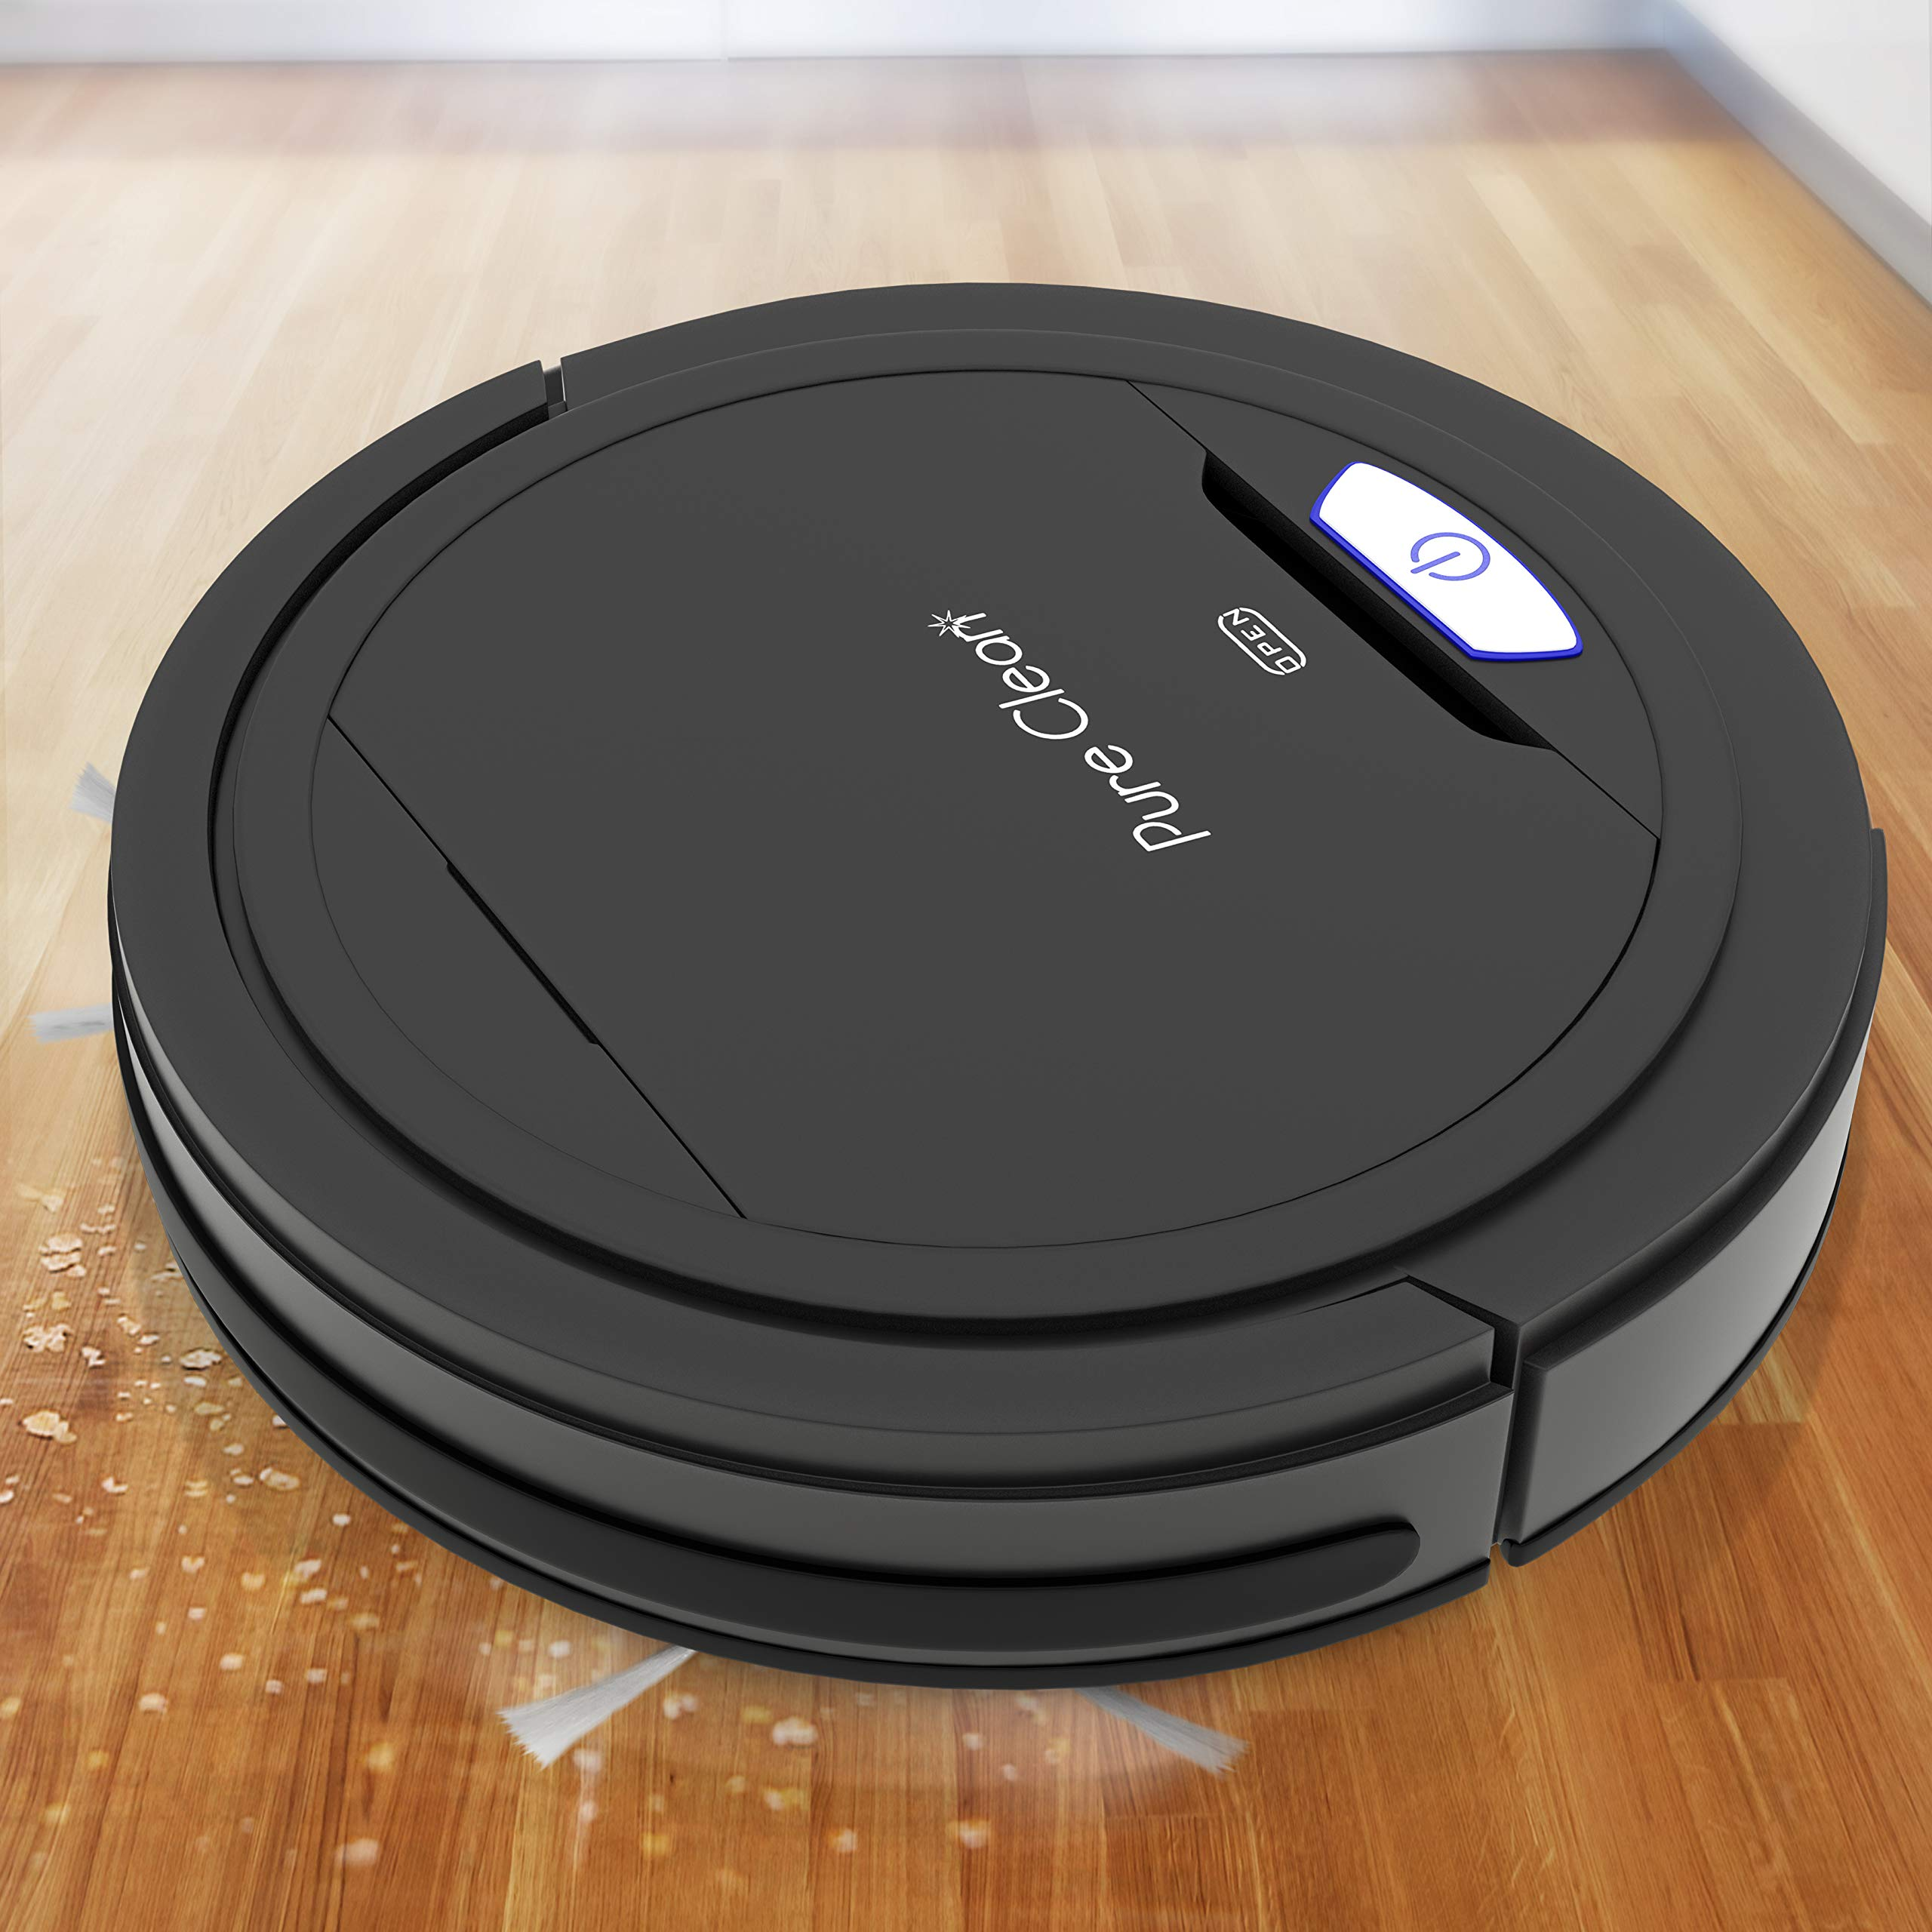 PUCRC26B Automatic Robot Vacuum Cleaner - Robotic Auto Home Cleaning for Clean Carpet Hardwood Floor - Bot Self Detects Stairs - Air Filter Pet Hair Allergies Friendly - Pure Clean by PURE CLEAN